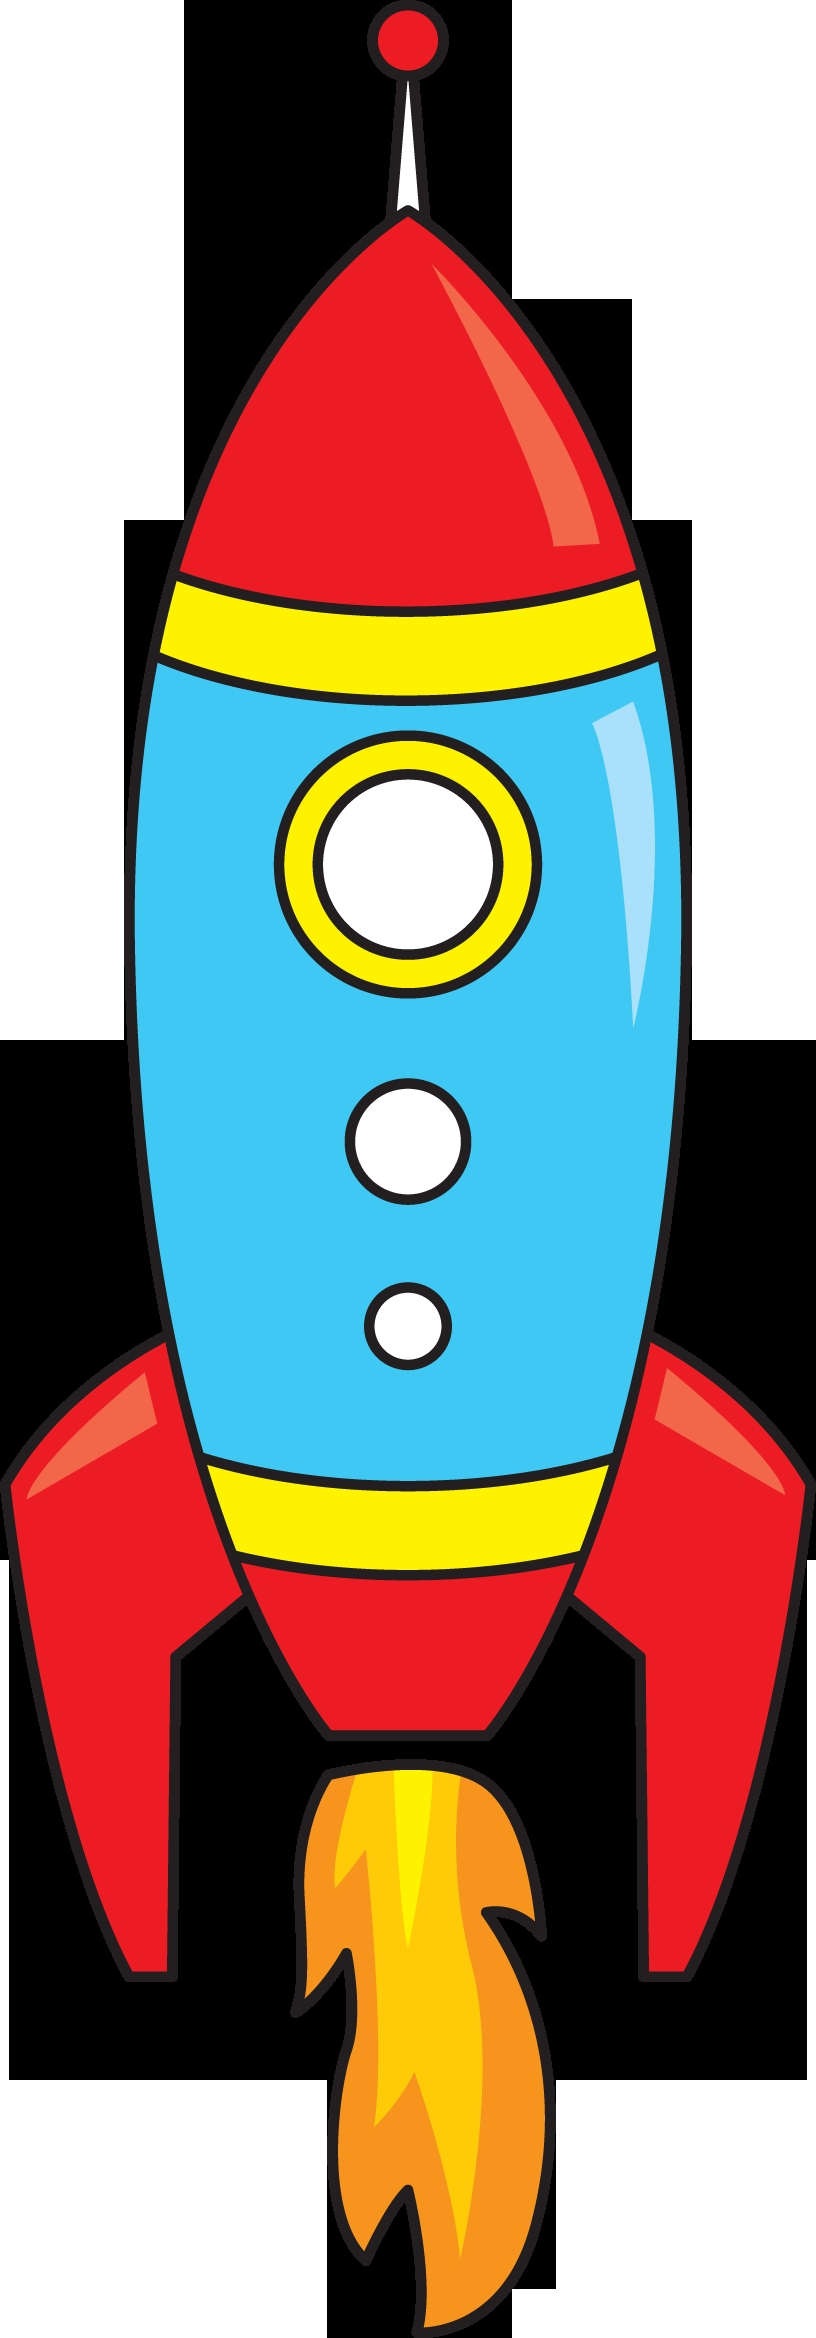 816x2338 New Rocket Ship Clipart Collection